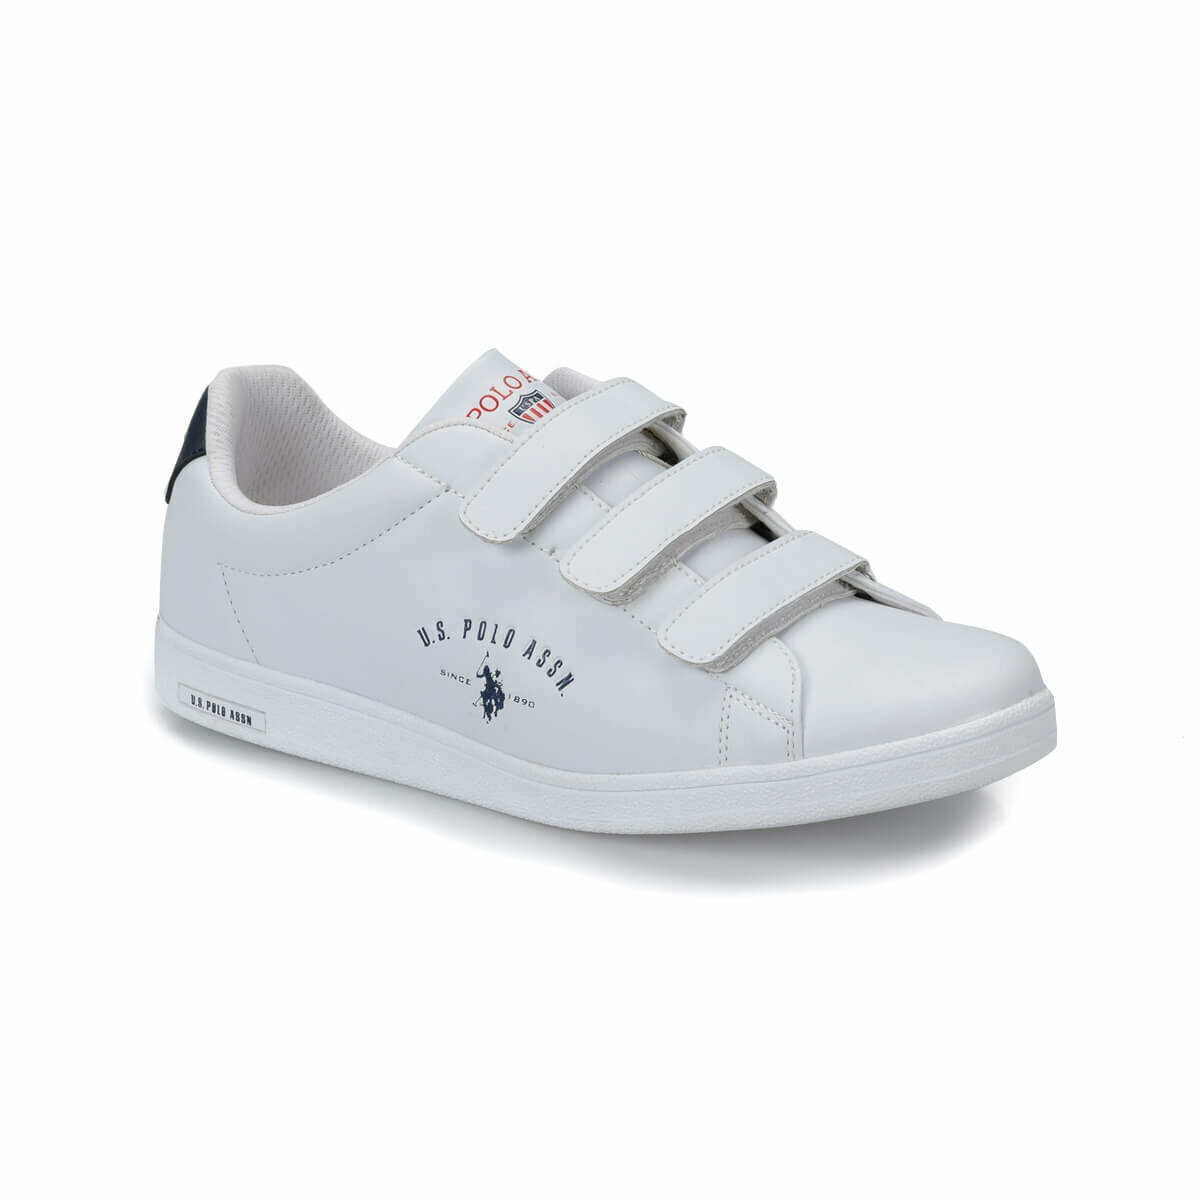 FLO SINGER White Men 'S Sneaker Shoes U.S. POLO ASSN.